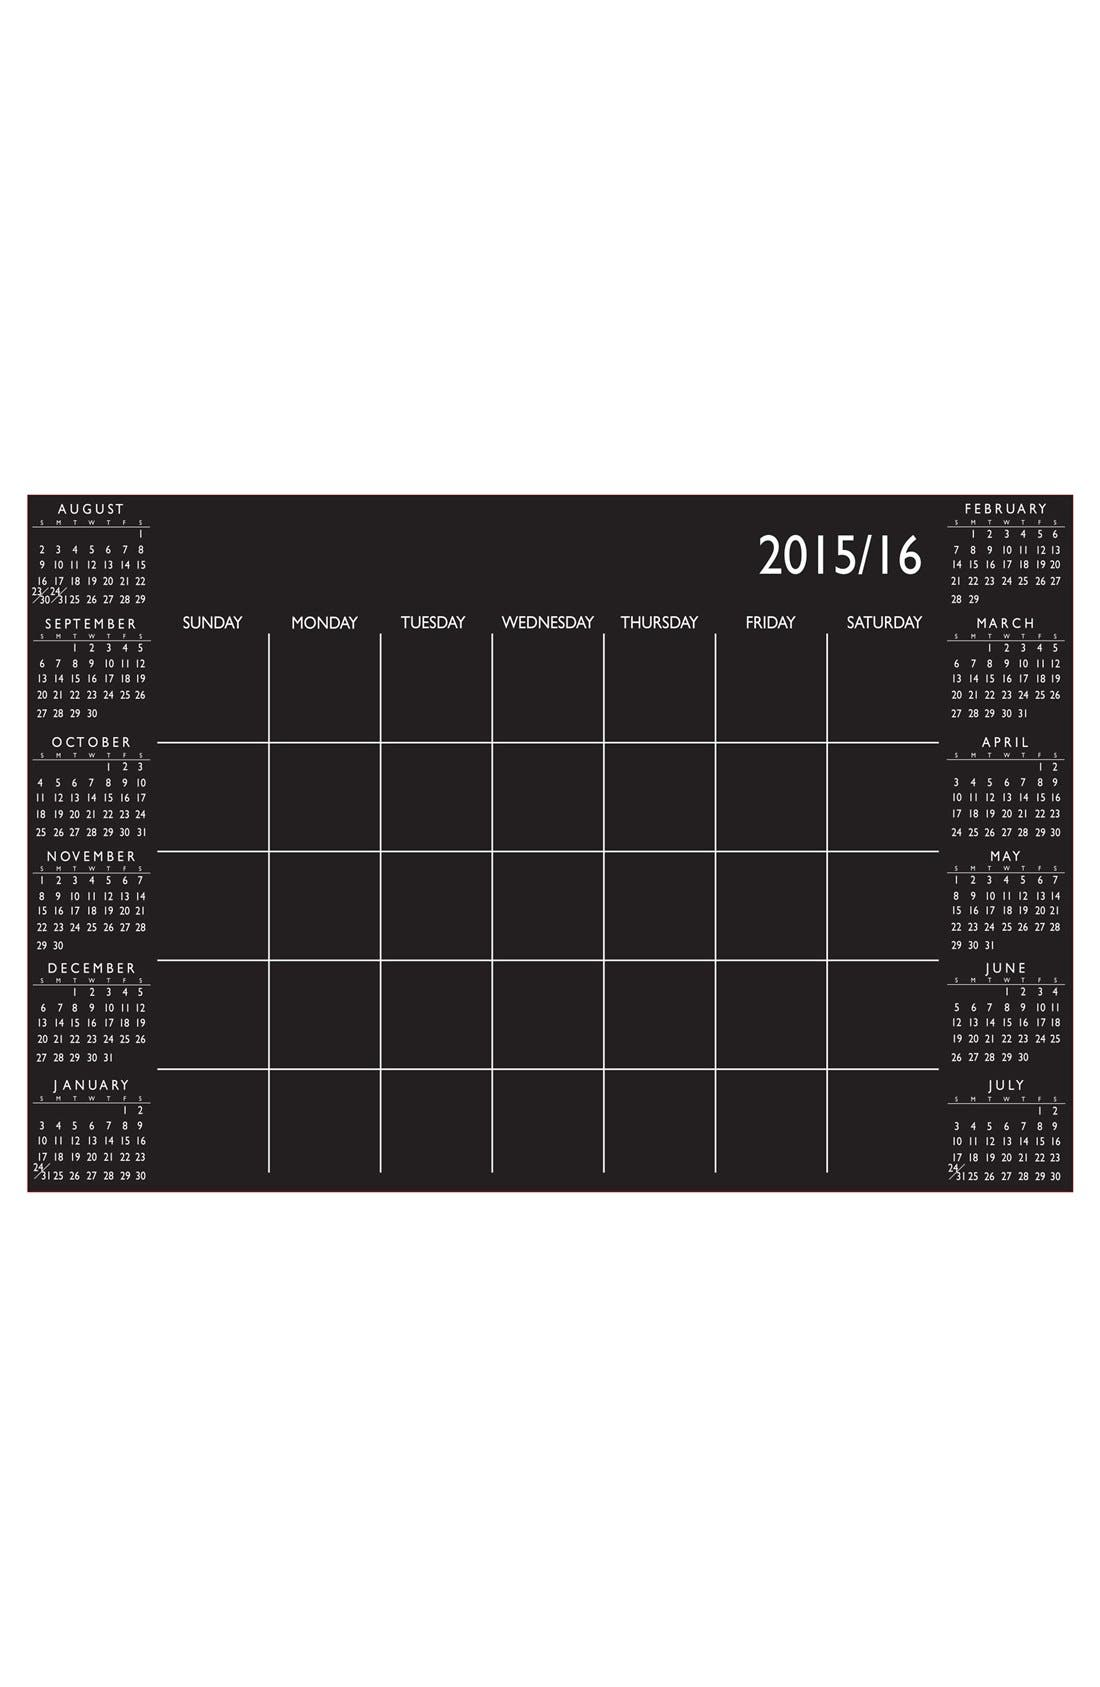 Main Image - Wallpops Academic Dry Erase Calendar Wall Decal